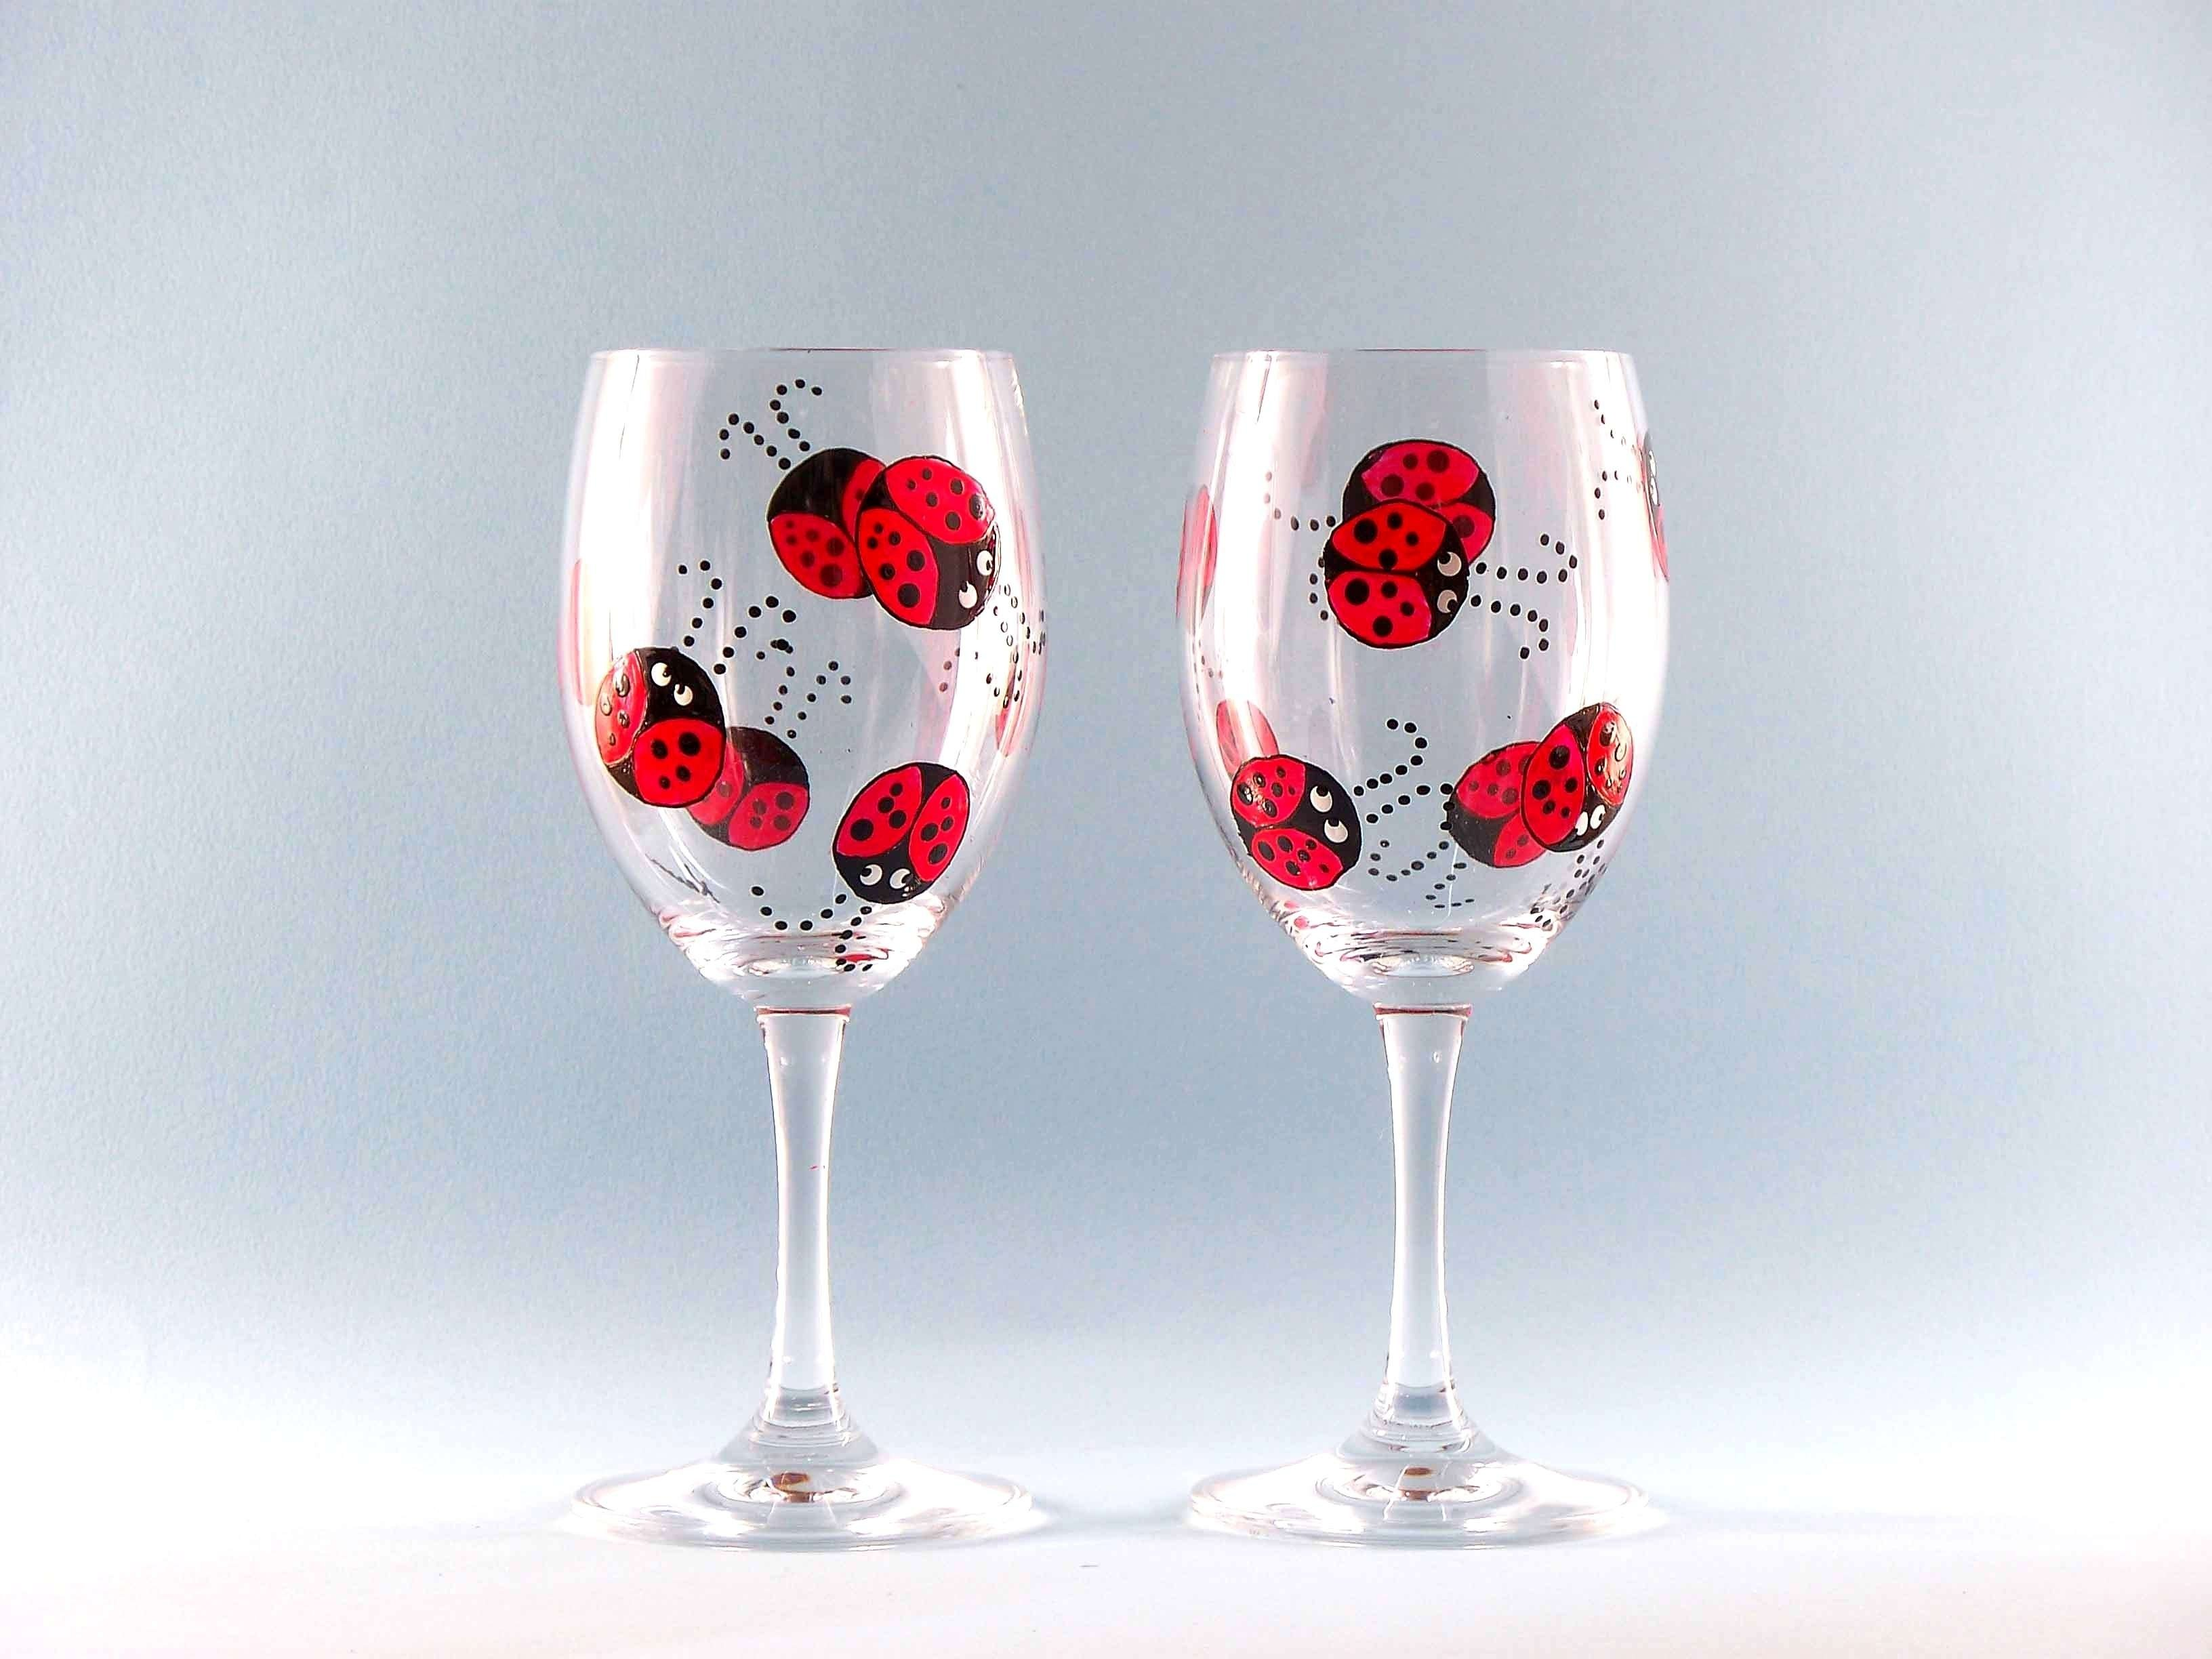 10 fabulous hand painted wine glasses ideas decorating wine glasses best of hand painted wine glass